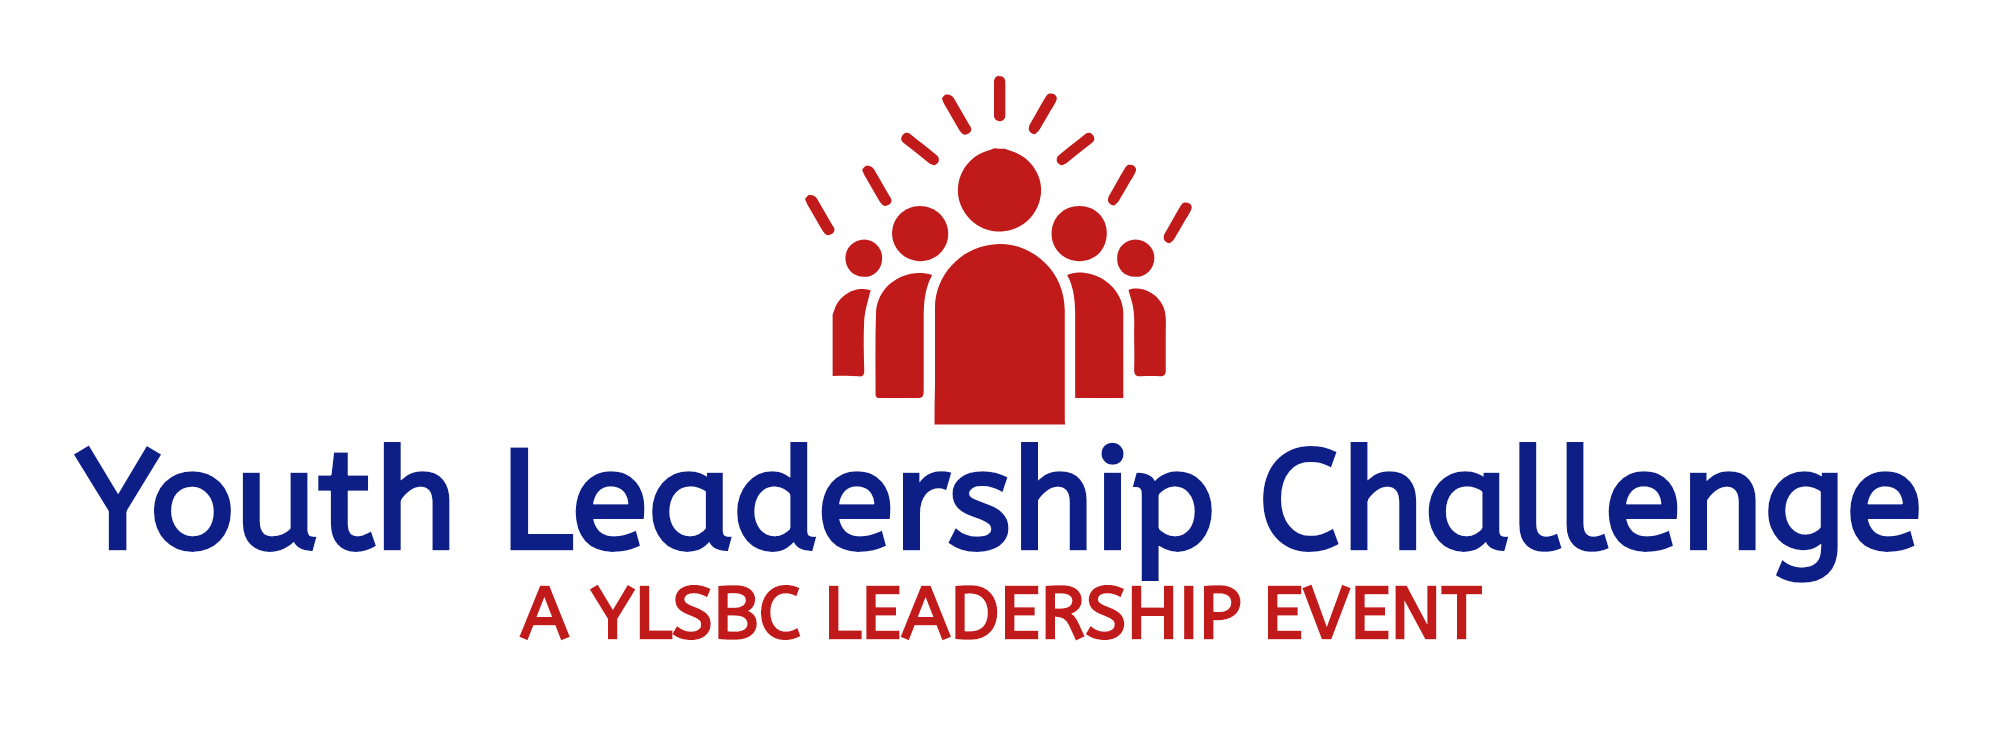 Youth Leadership Challenge logo final.png